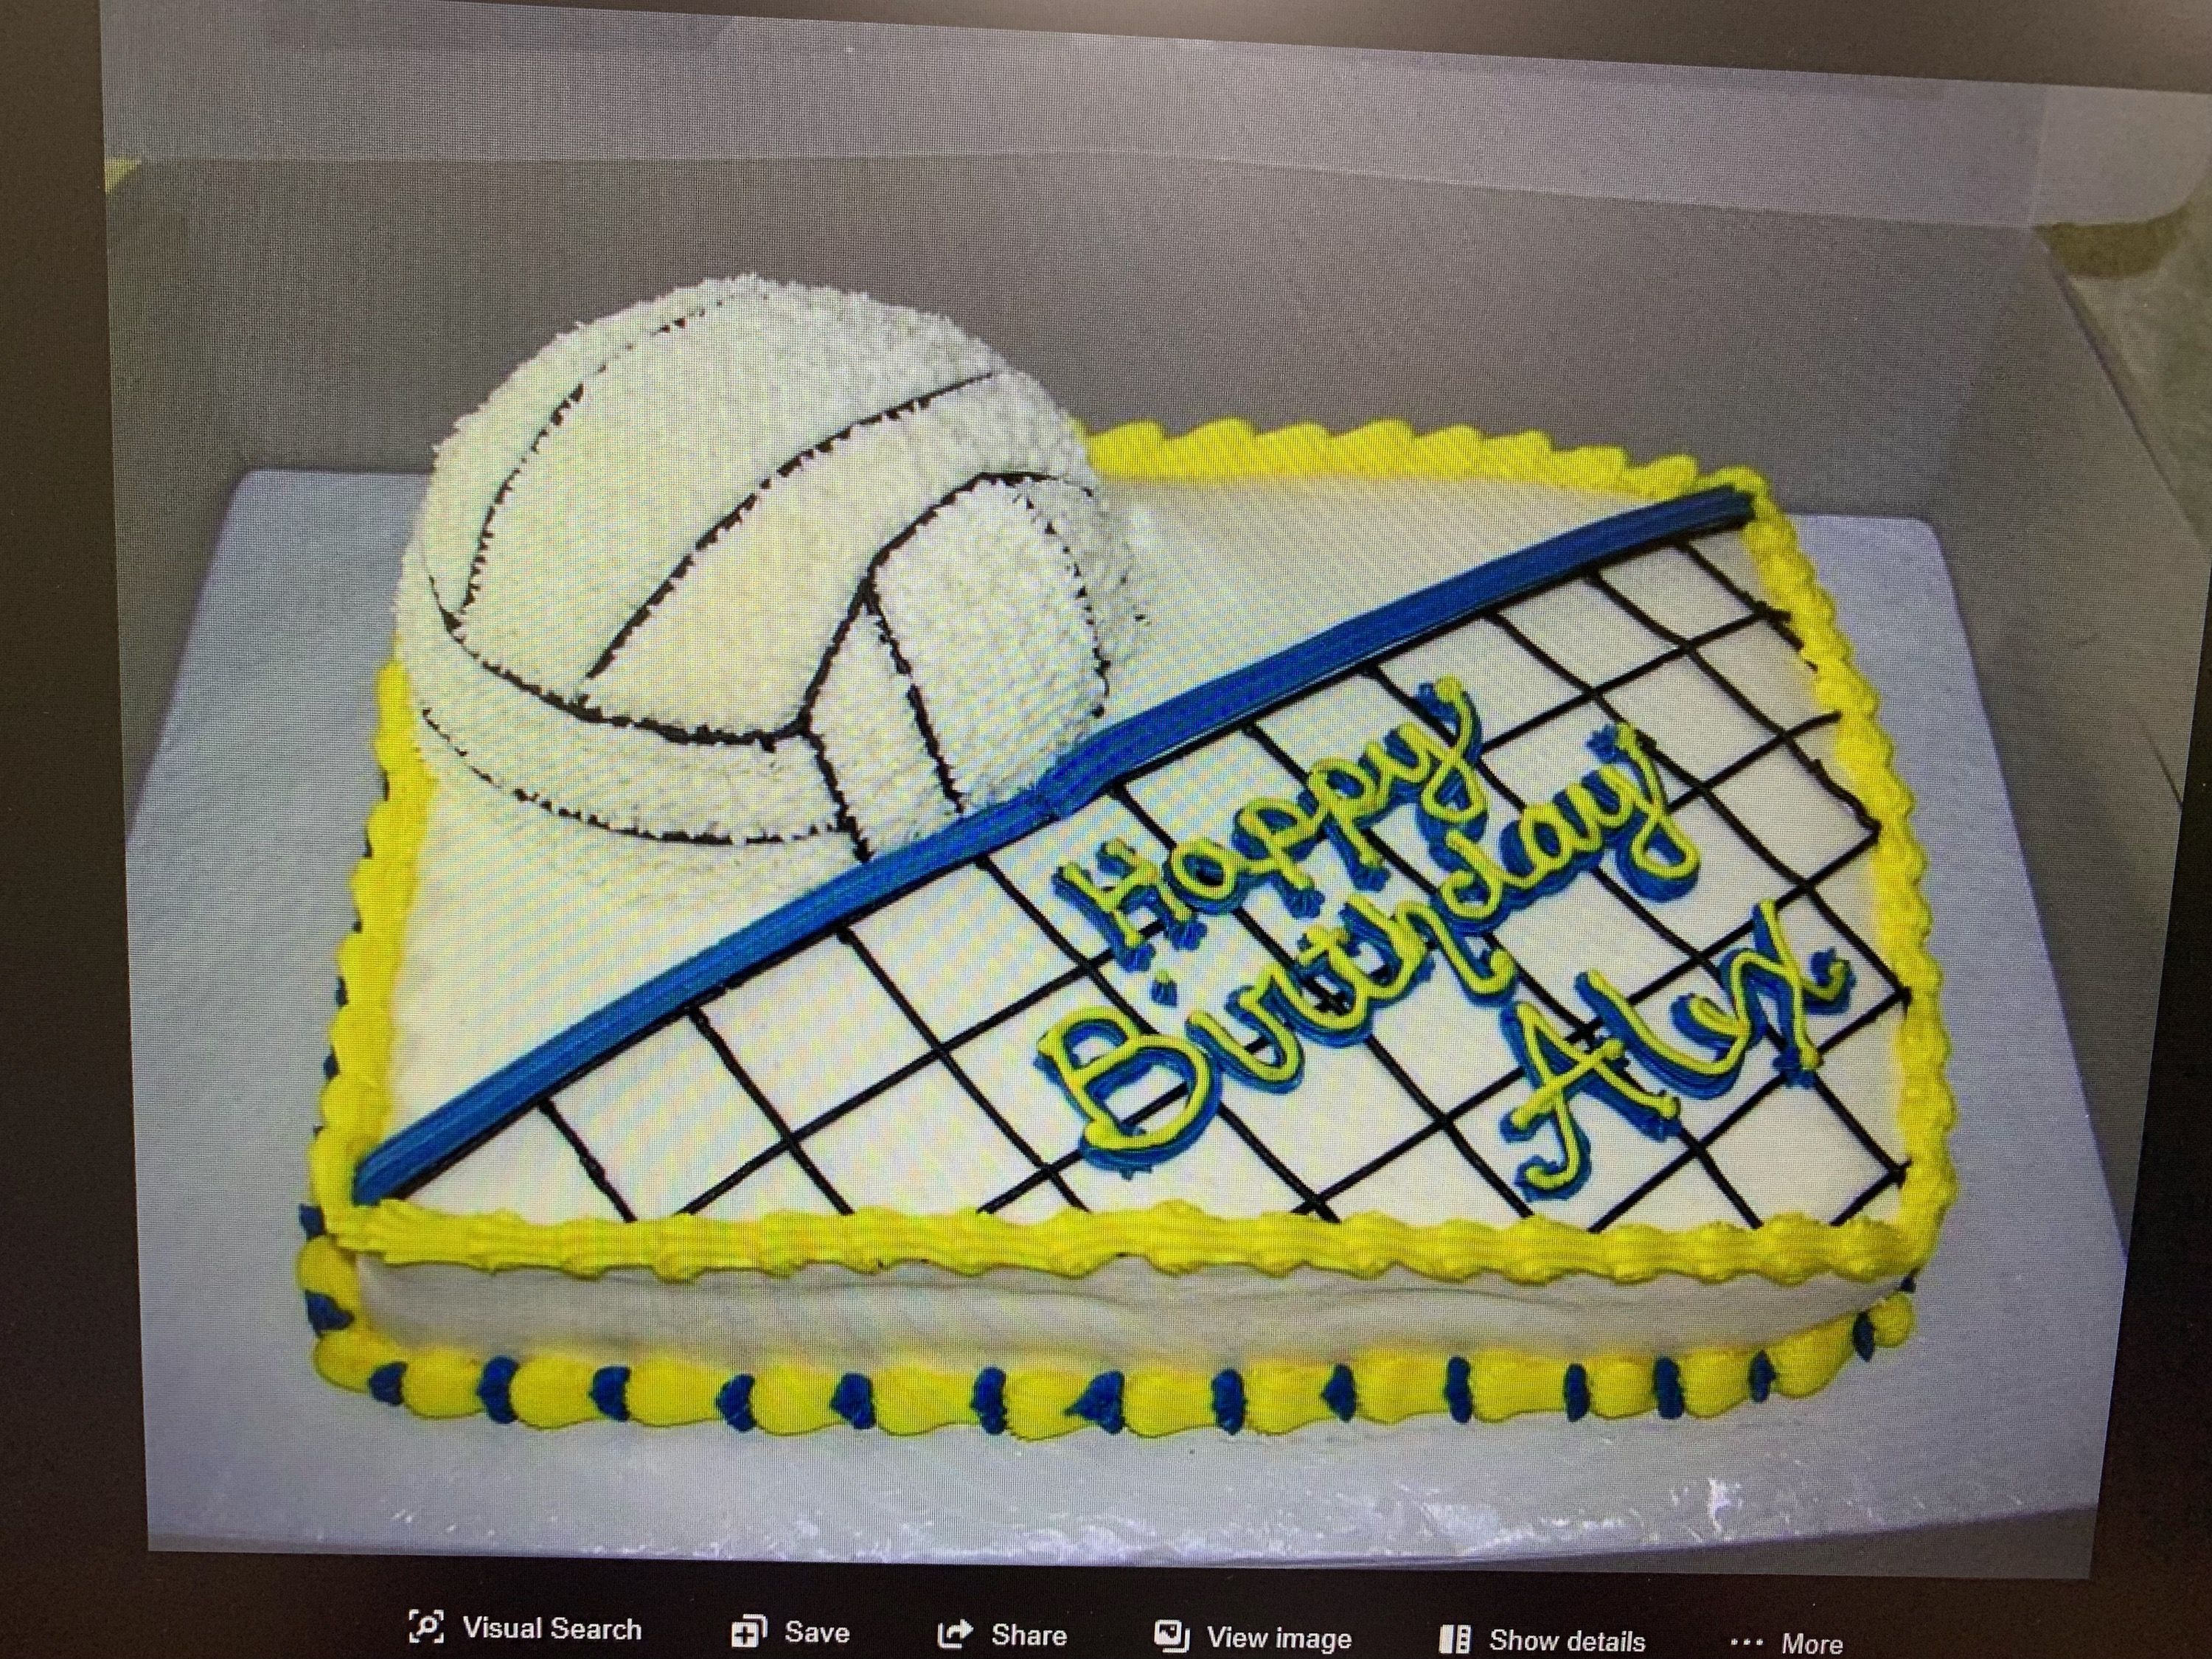 Pin By Kathy Miller On Ideas For Cakes Cupcakes Volleyball Cakes Cake Cake Recipe For Decorating